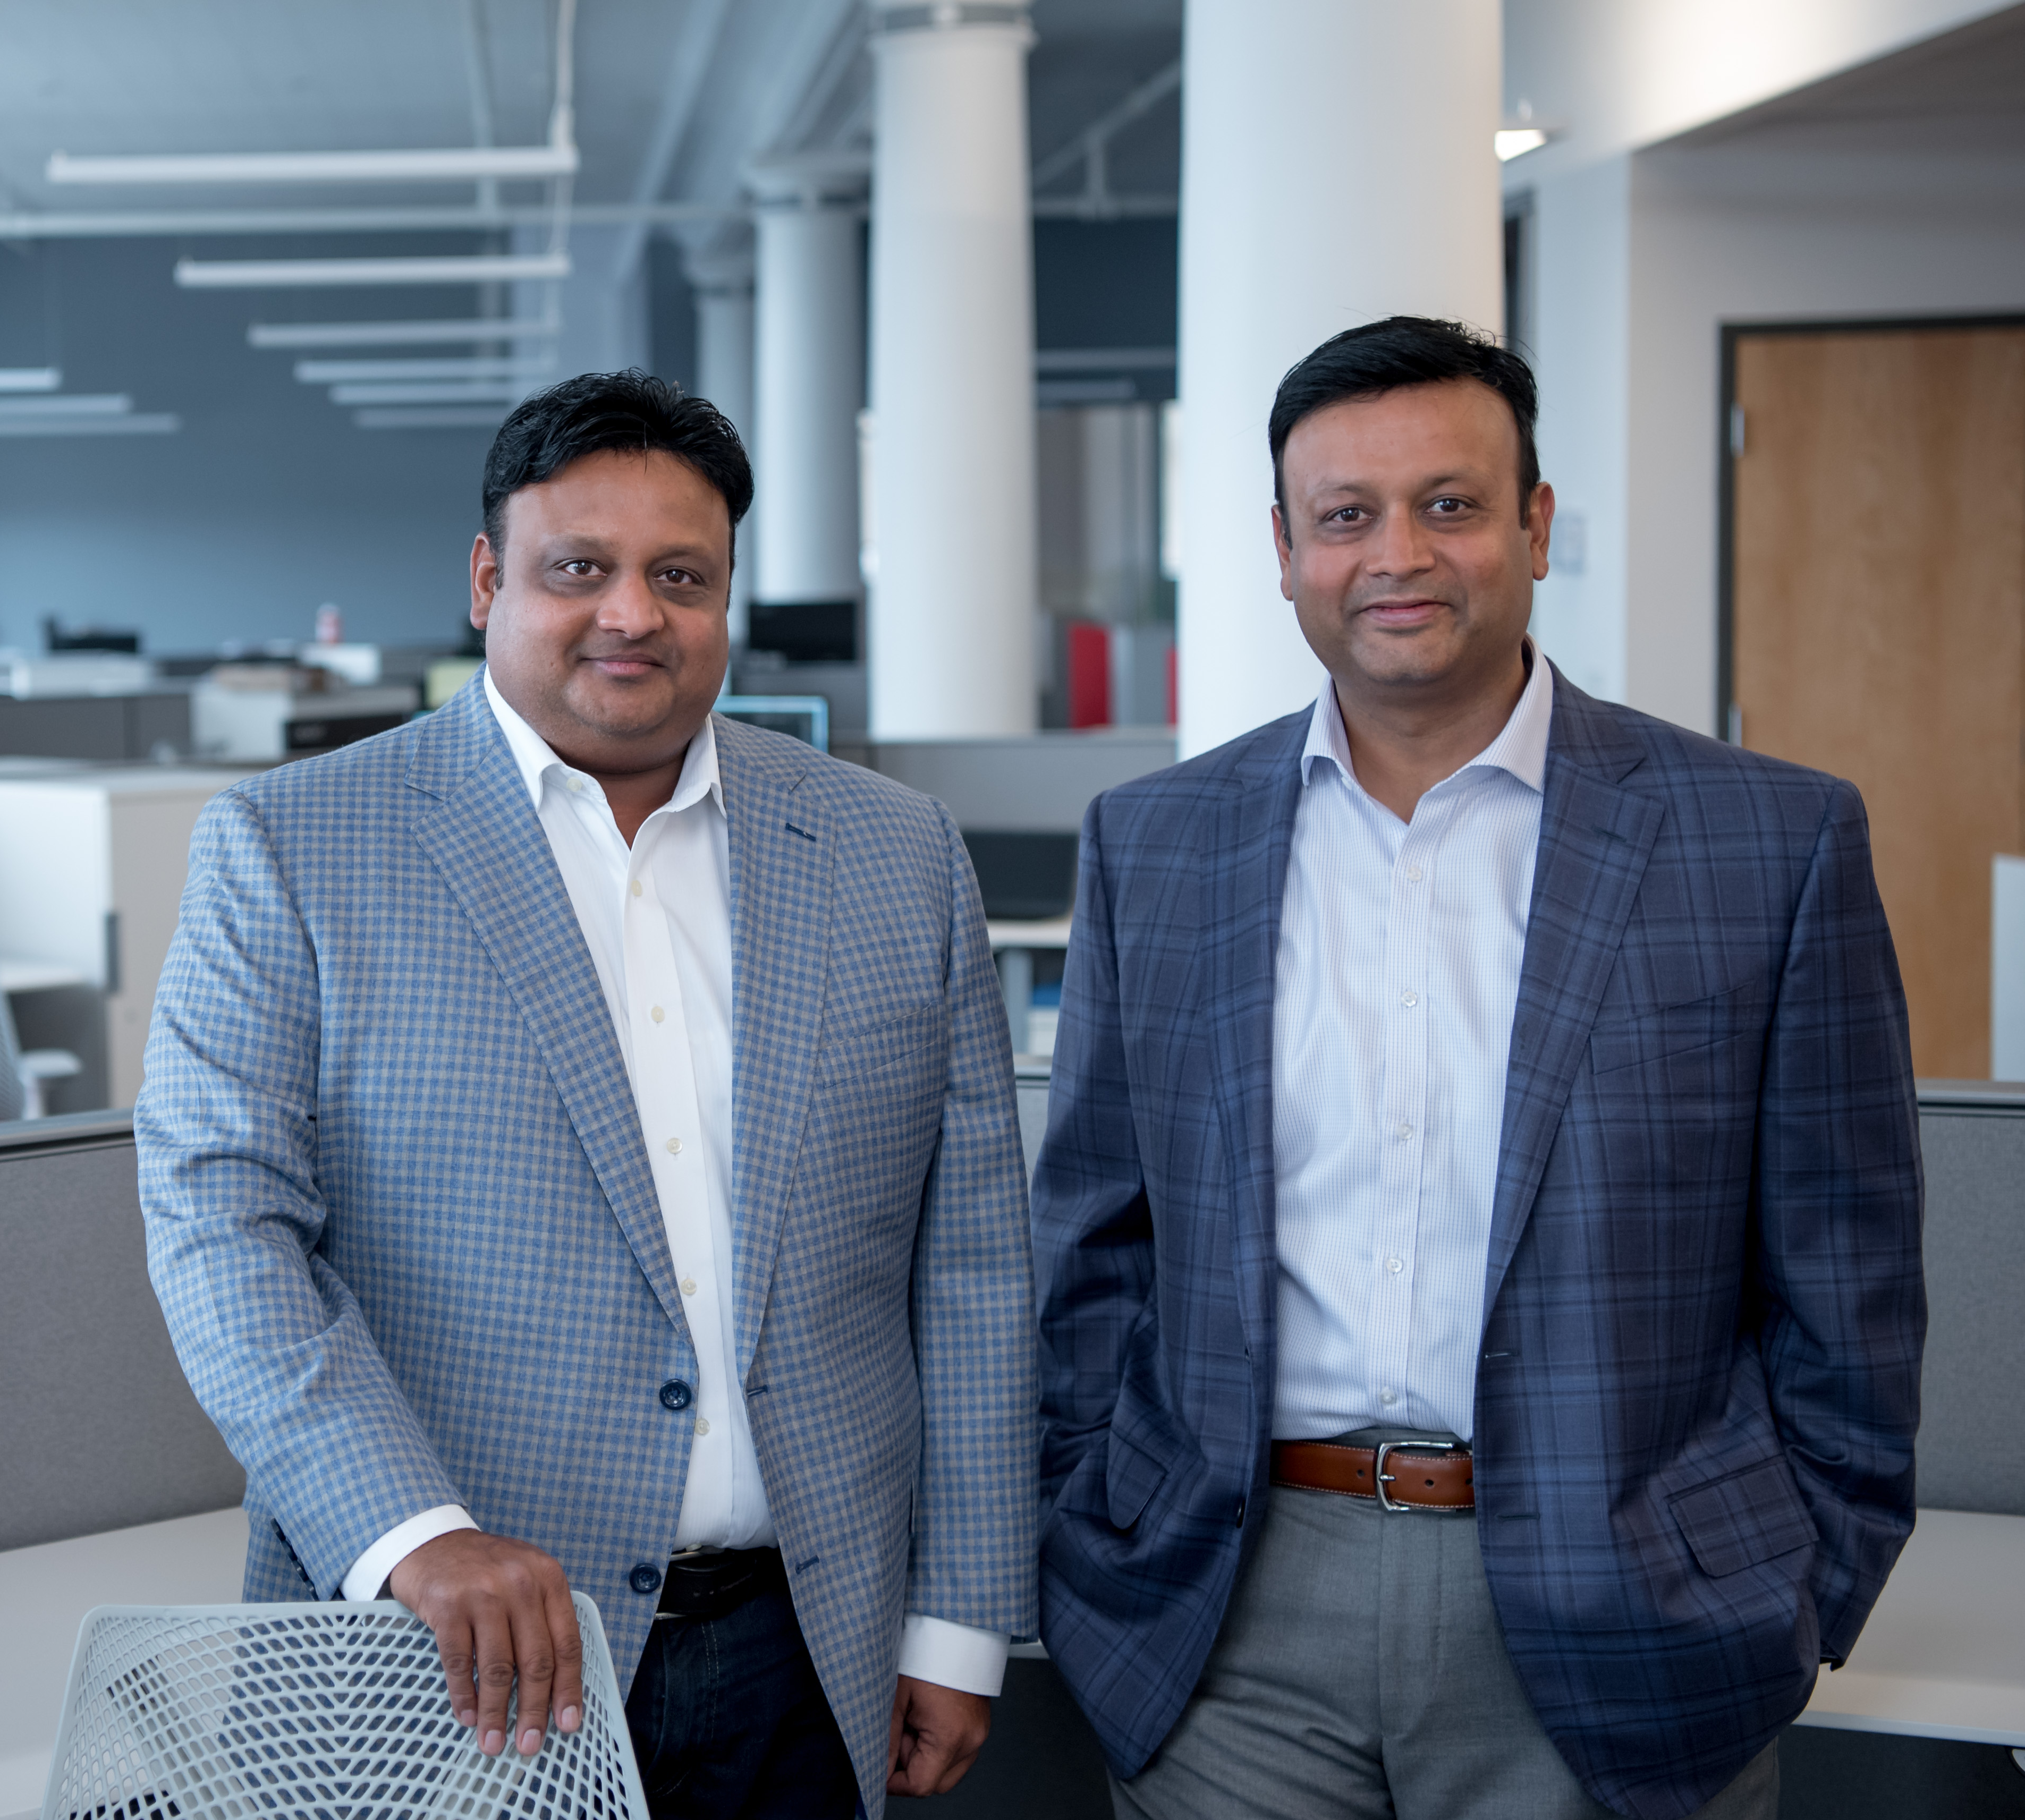 Pictured are two men in an office. Pictured left is Vikram Agrawal and right is Vikash Agrawal.